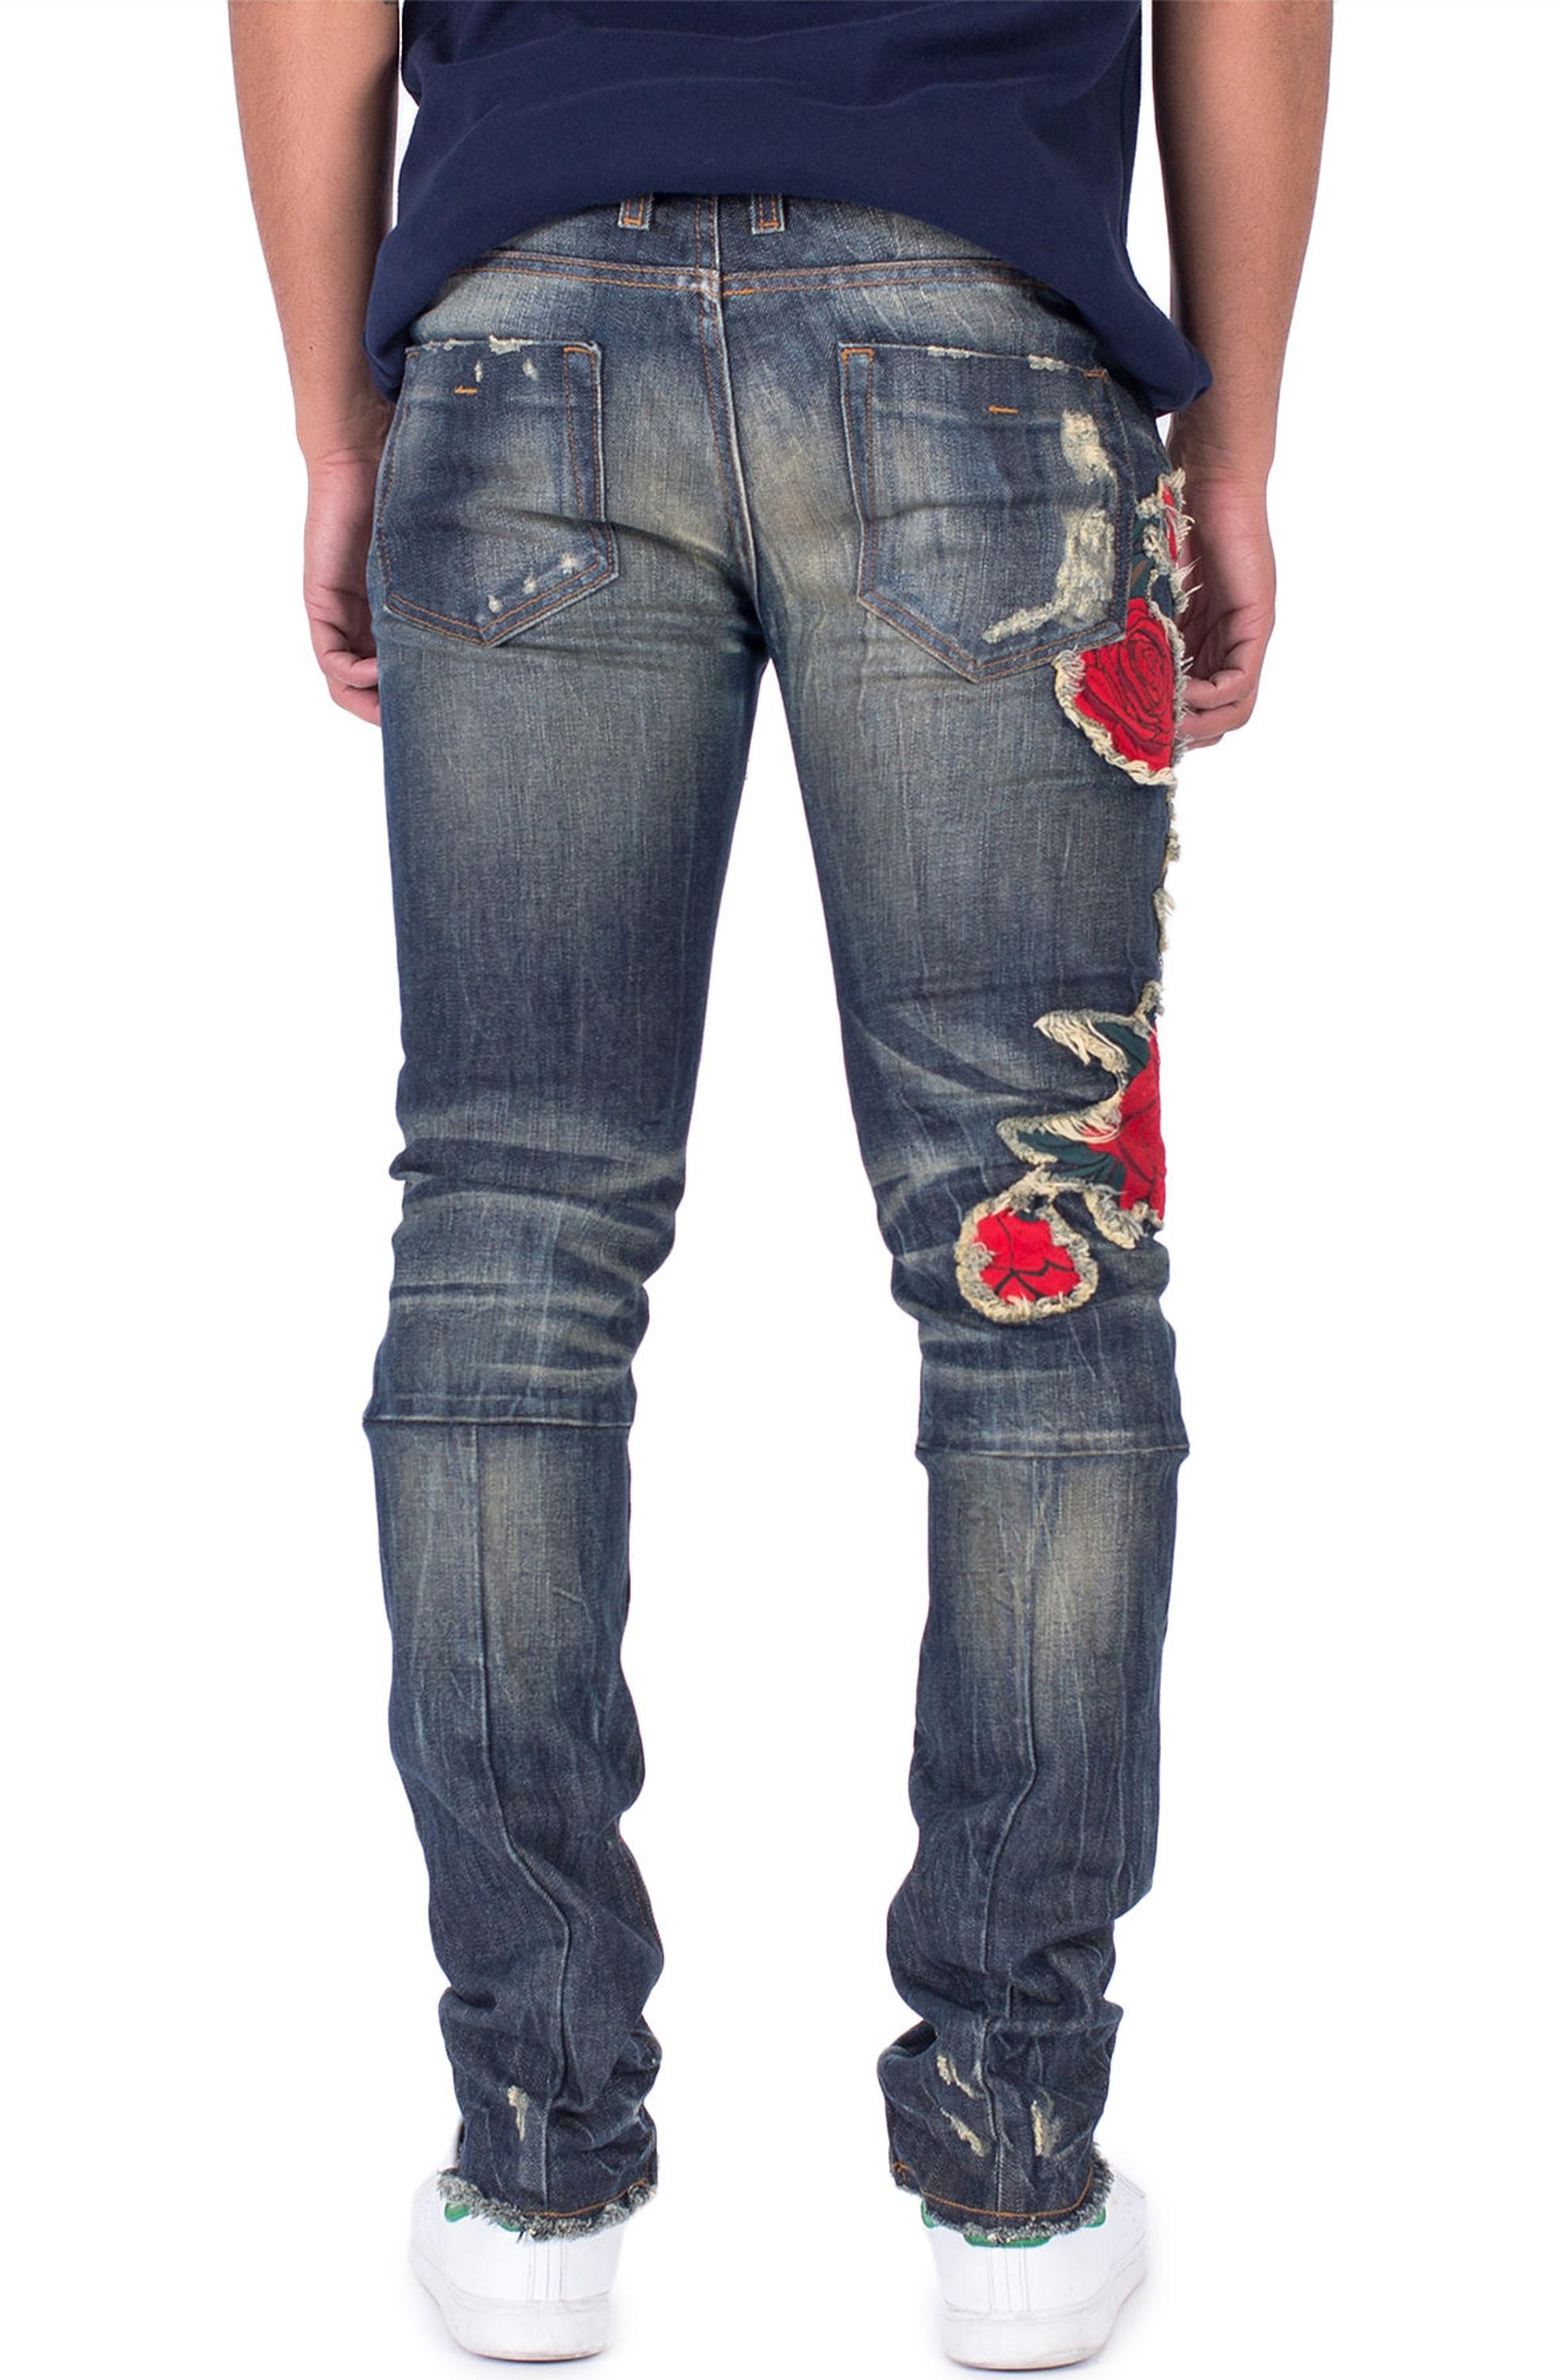 OEM luxury customized victorious stretch mens designer jeans wholesale Rosa Embro ripped Denim Jeans in Dark Indigo 159